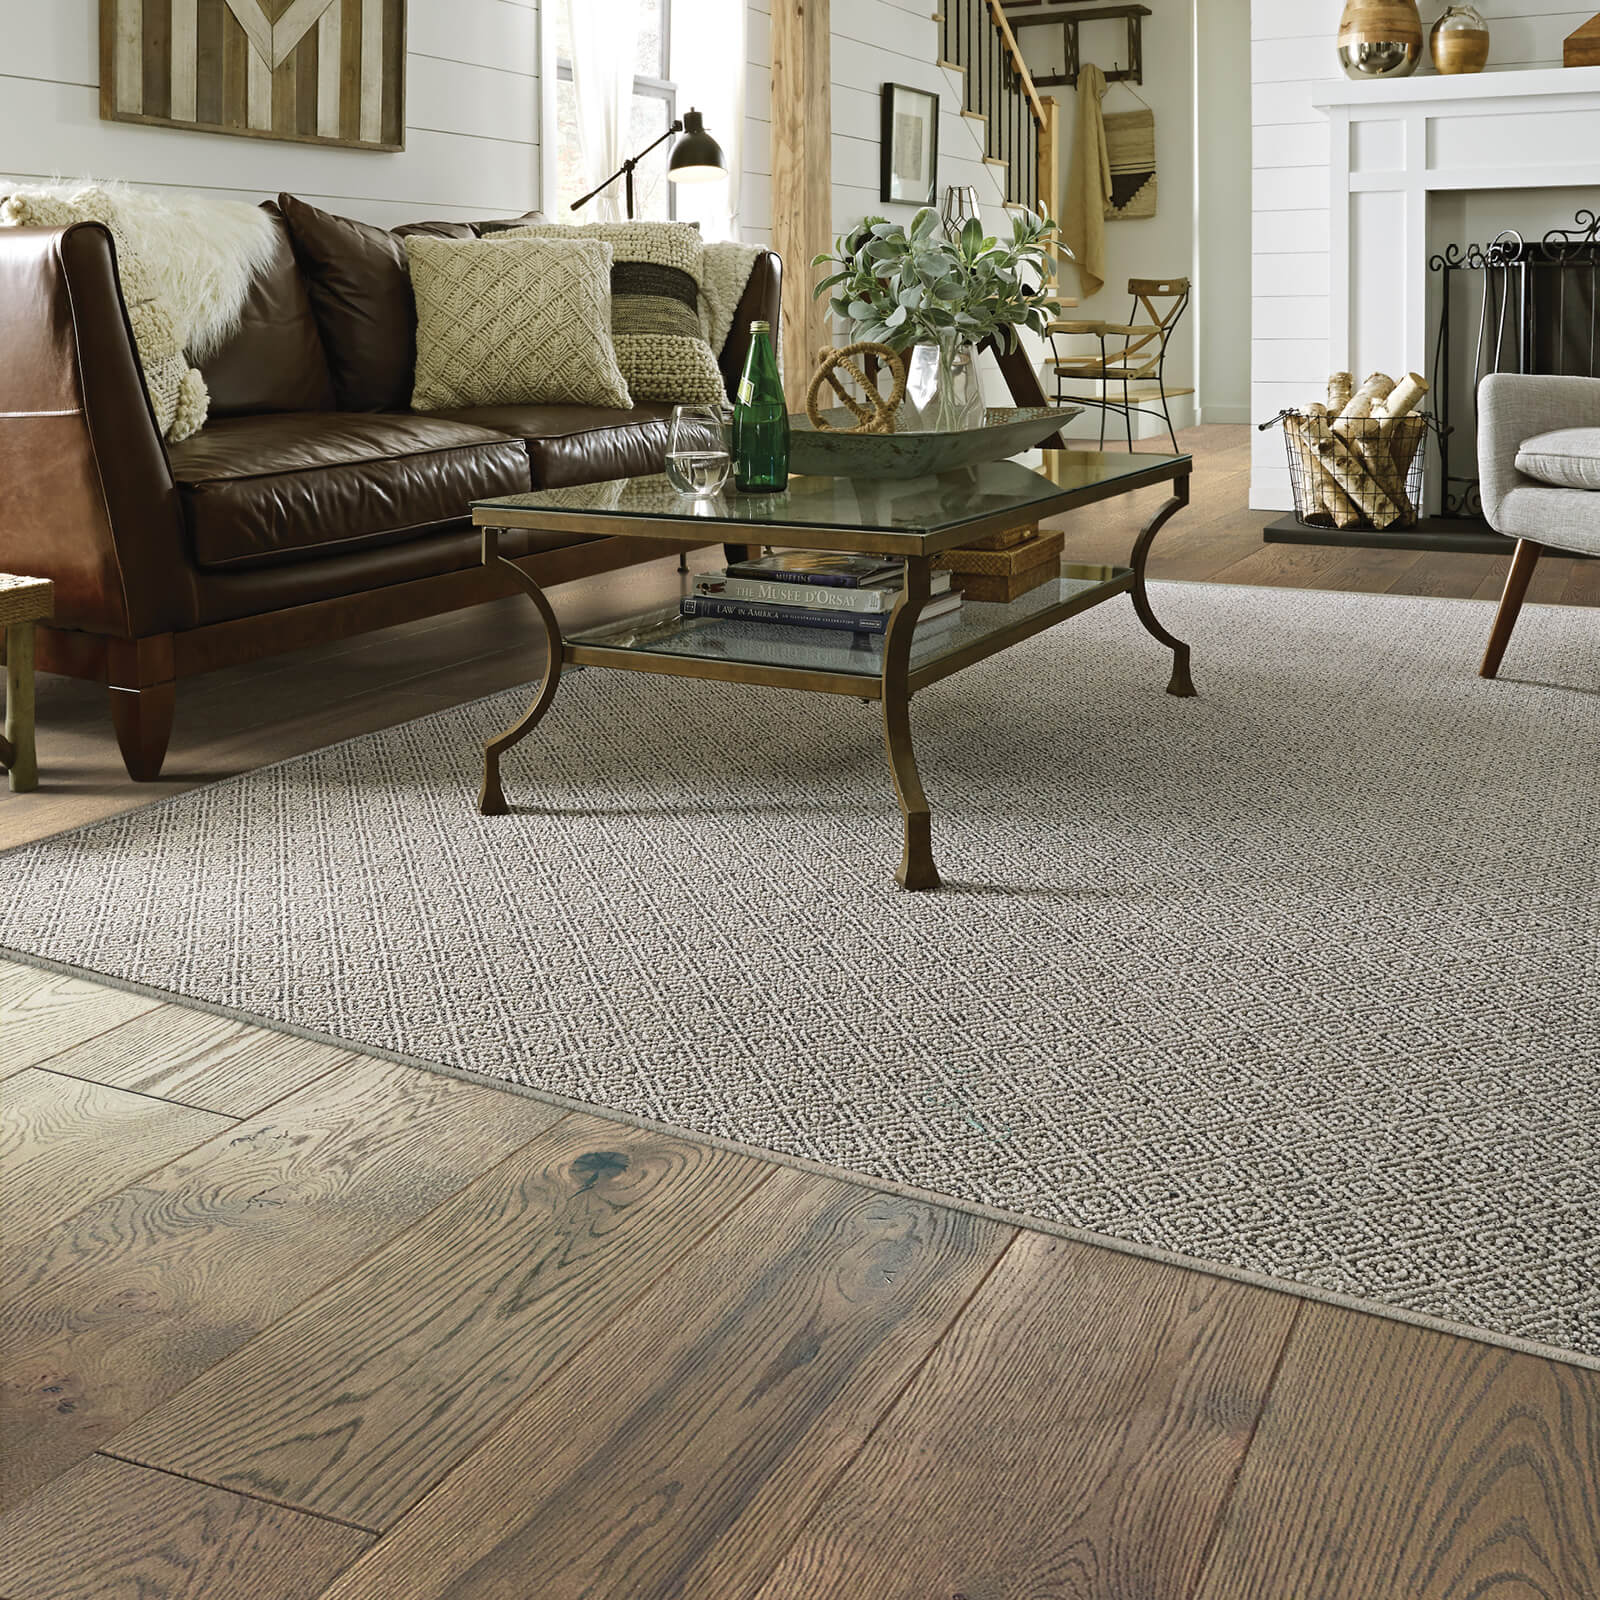 Living room interior | The Flooring Place